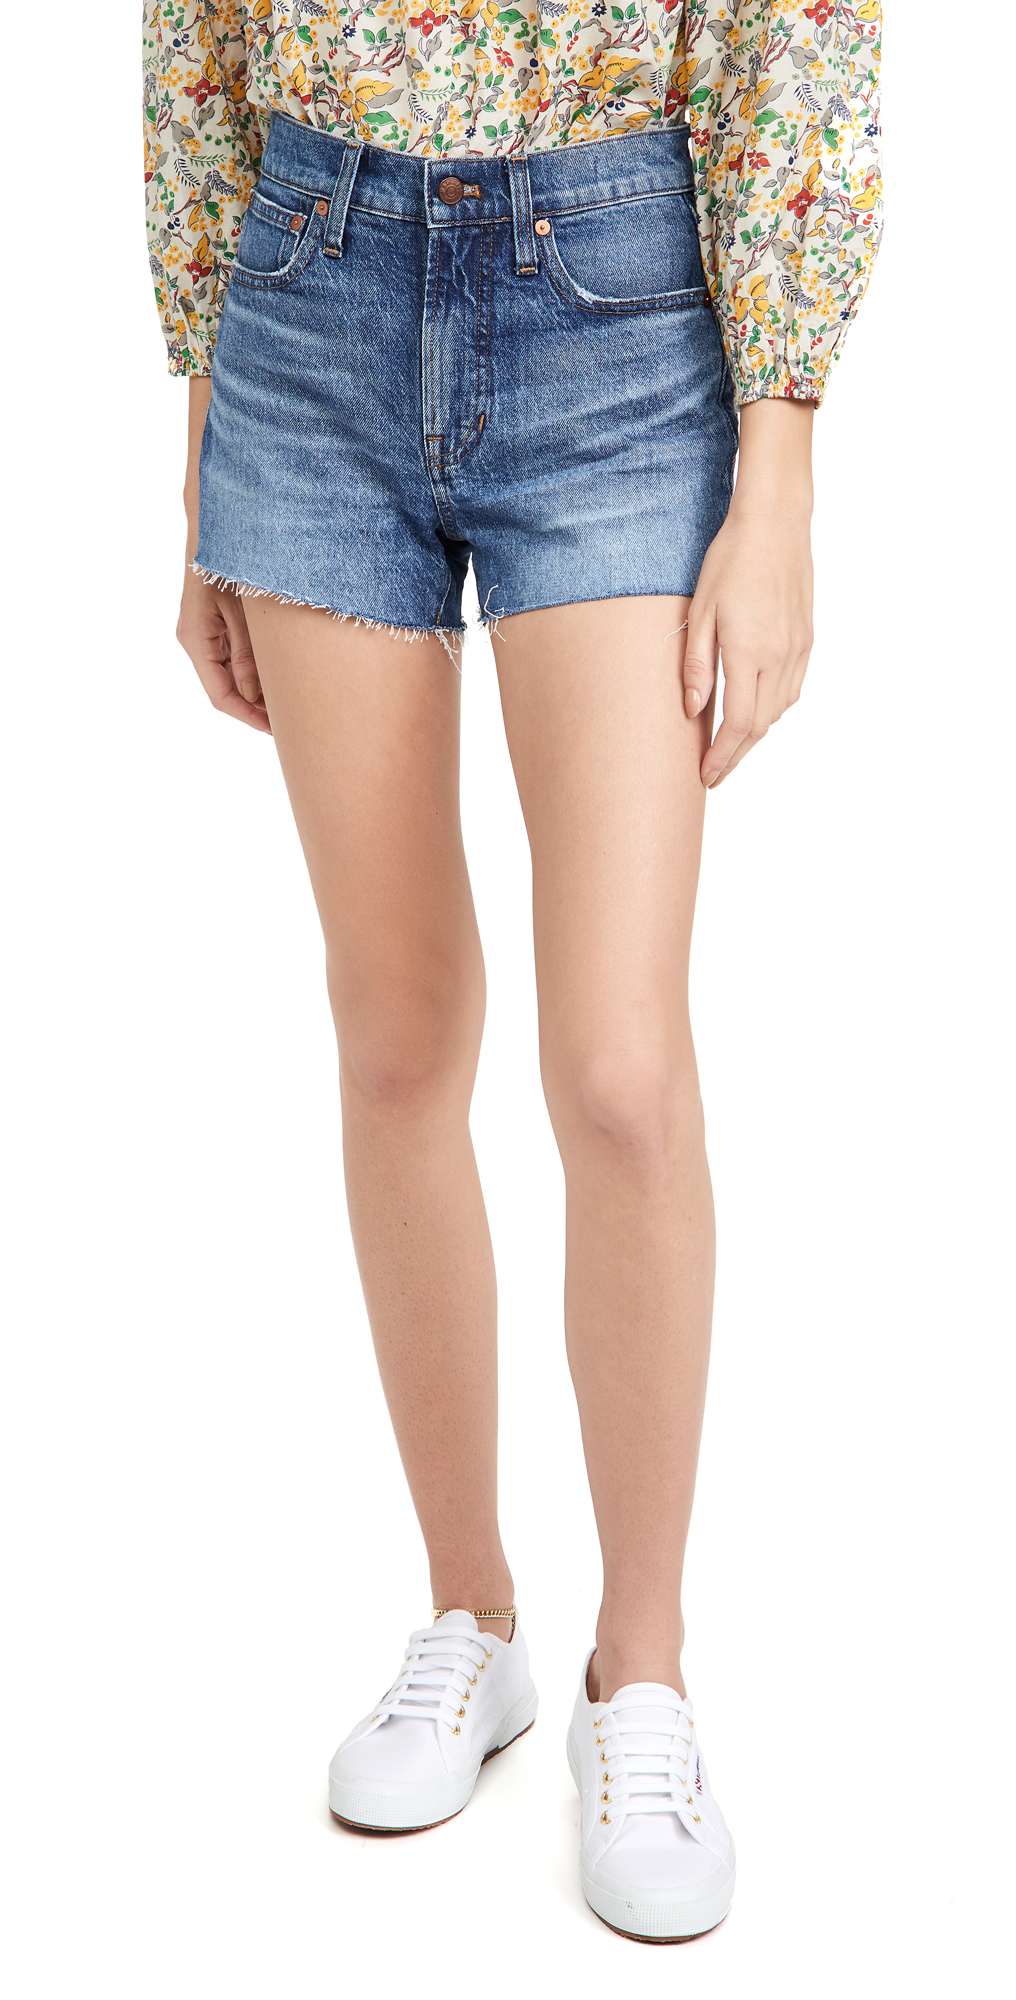 Madewell The Perfect Cutoff Shorts